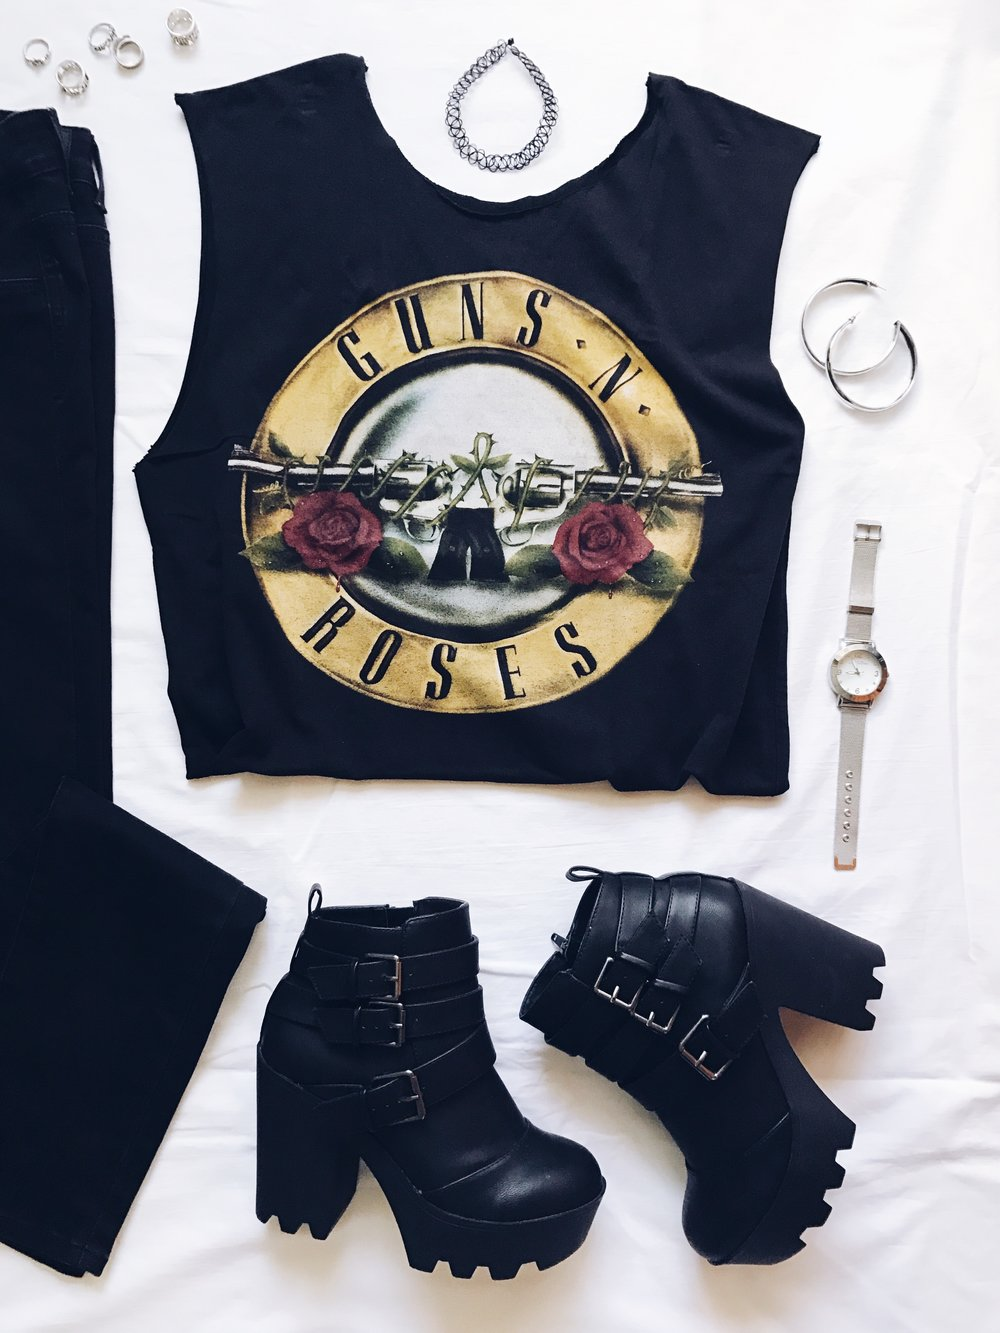 style wear band tee tshirt shirt outfit outfits ootd shorts guns n roses rock jewelry rings earrings watch choker jeans shoes boots flatlay flatlays